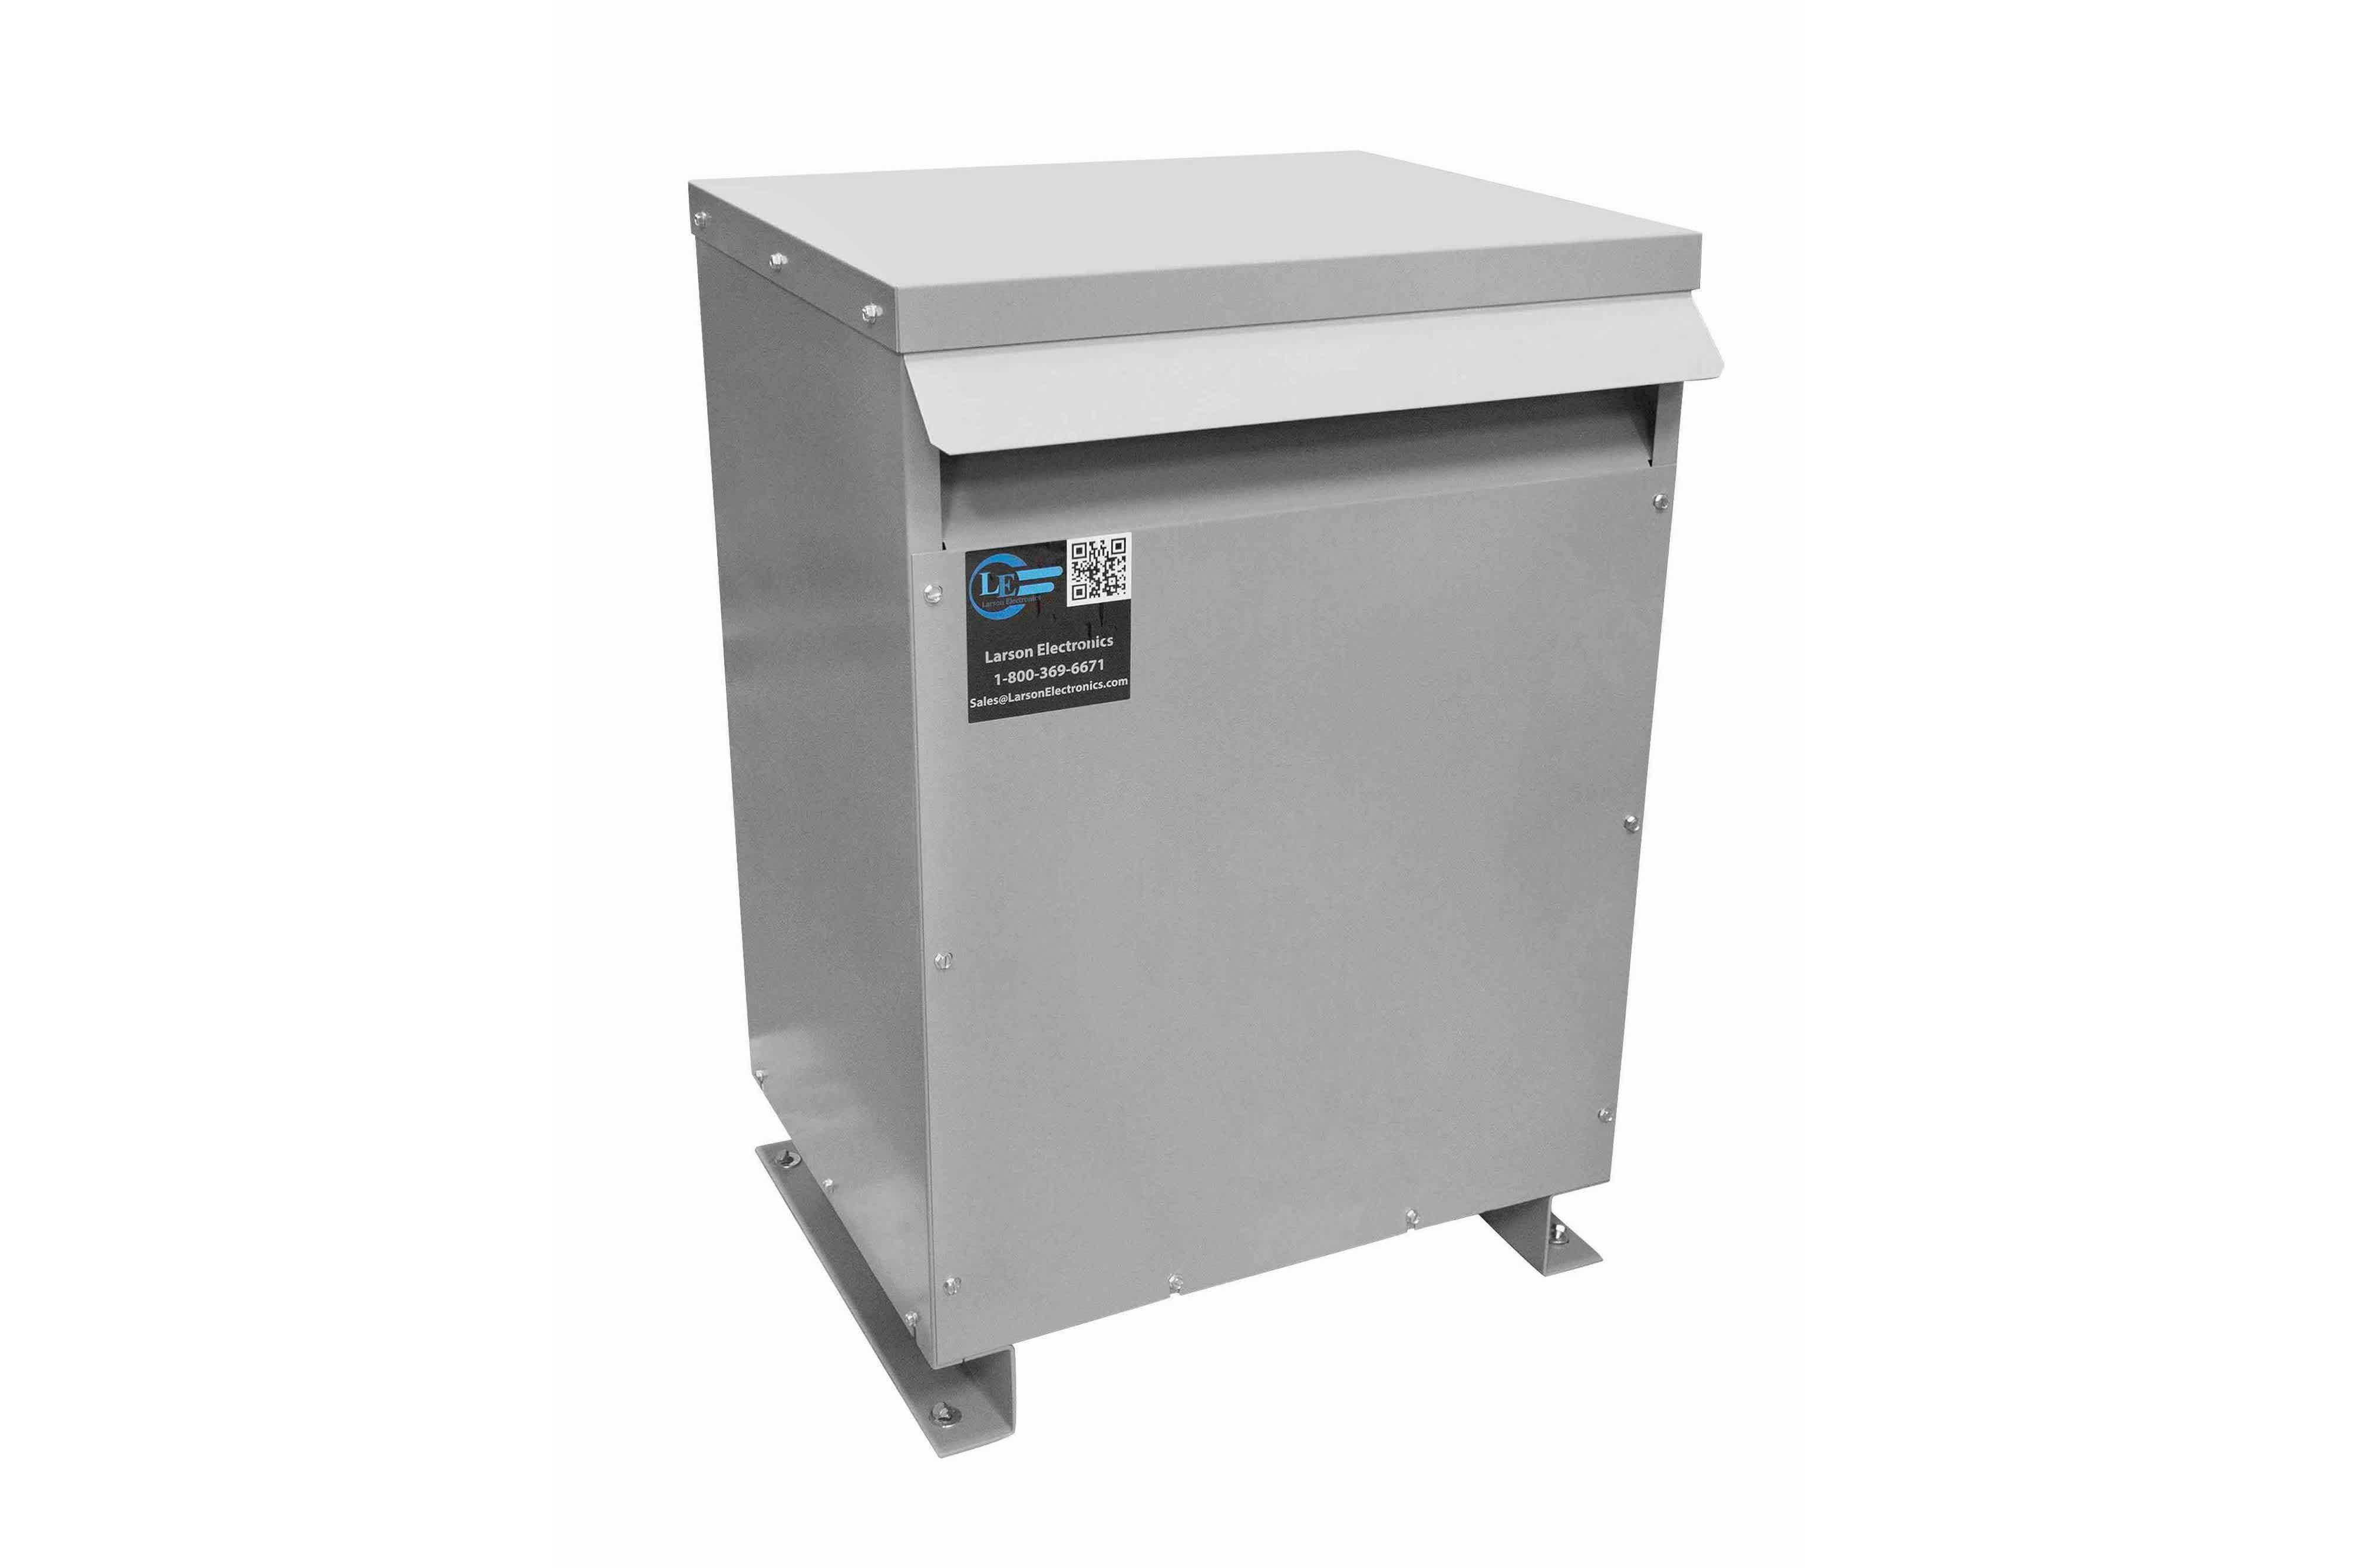 20 kVA 3PH Isolation Transformer, 575V Delta Primary, 208V Delta Secondary, N3R, Ventilated, 60 Hz